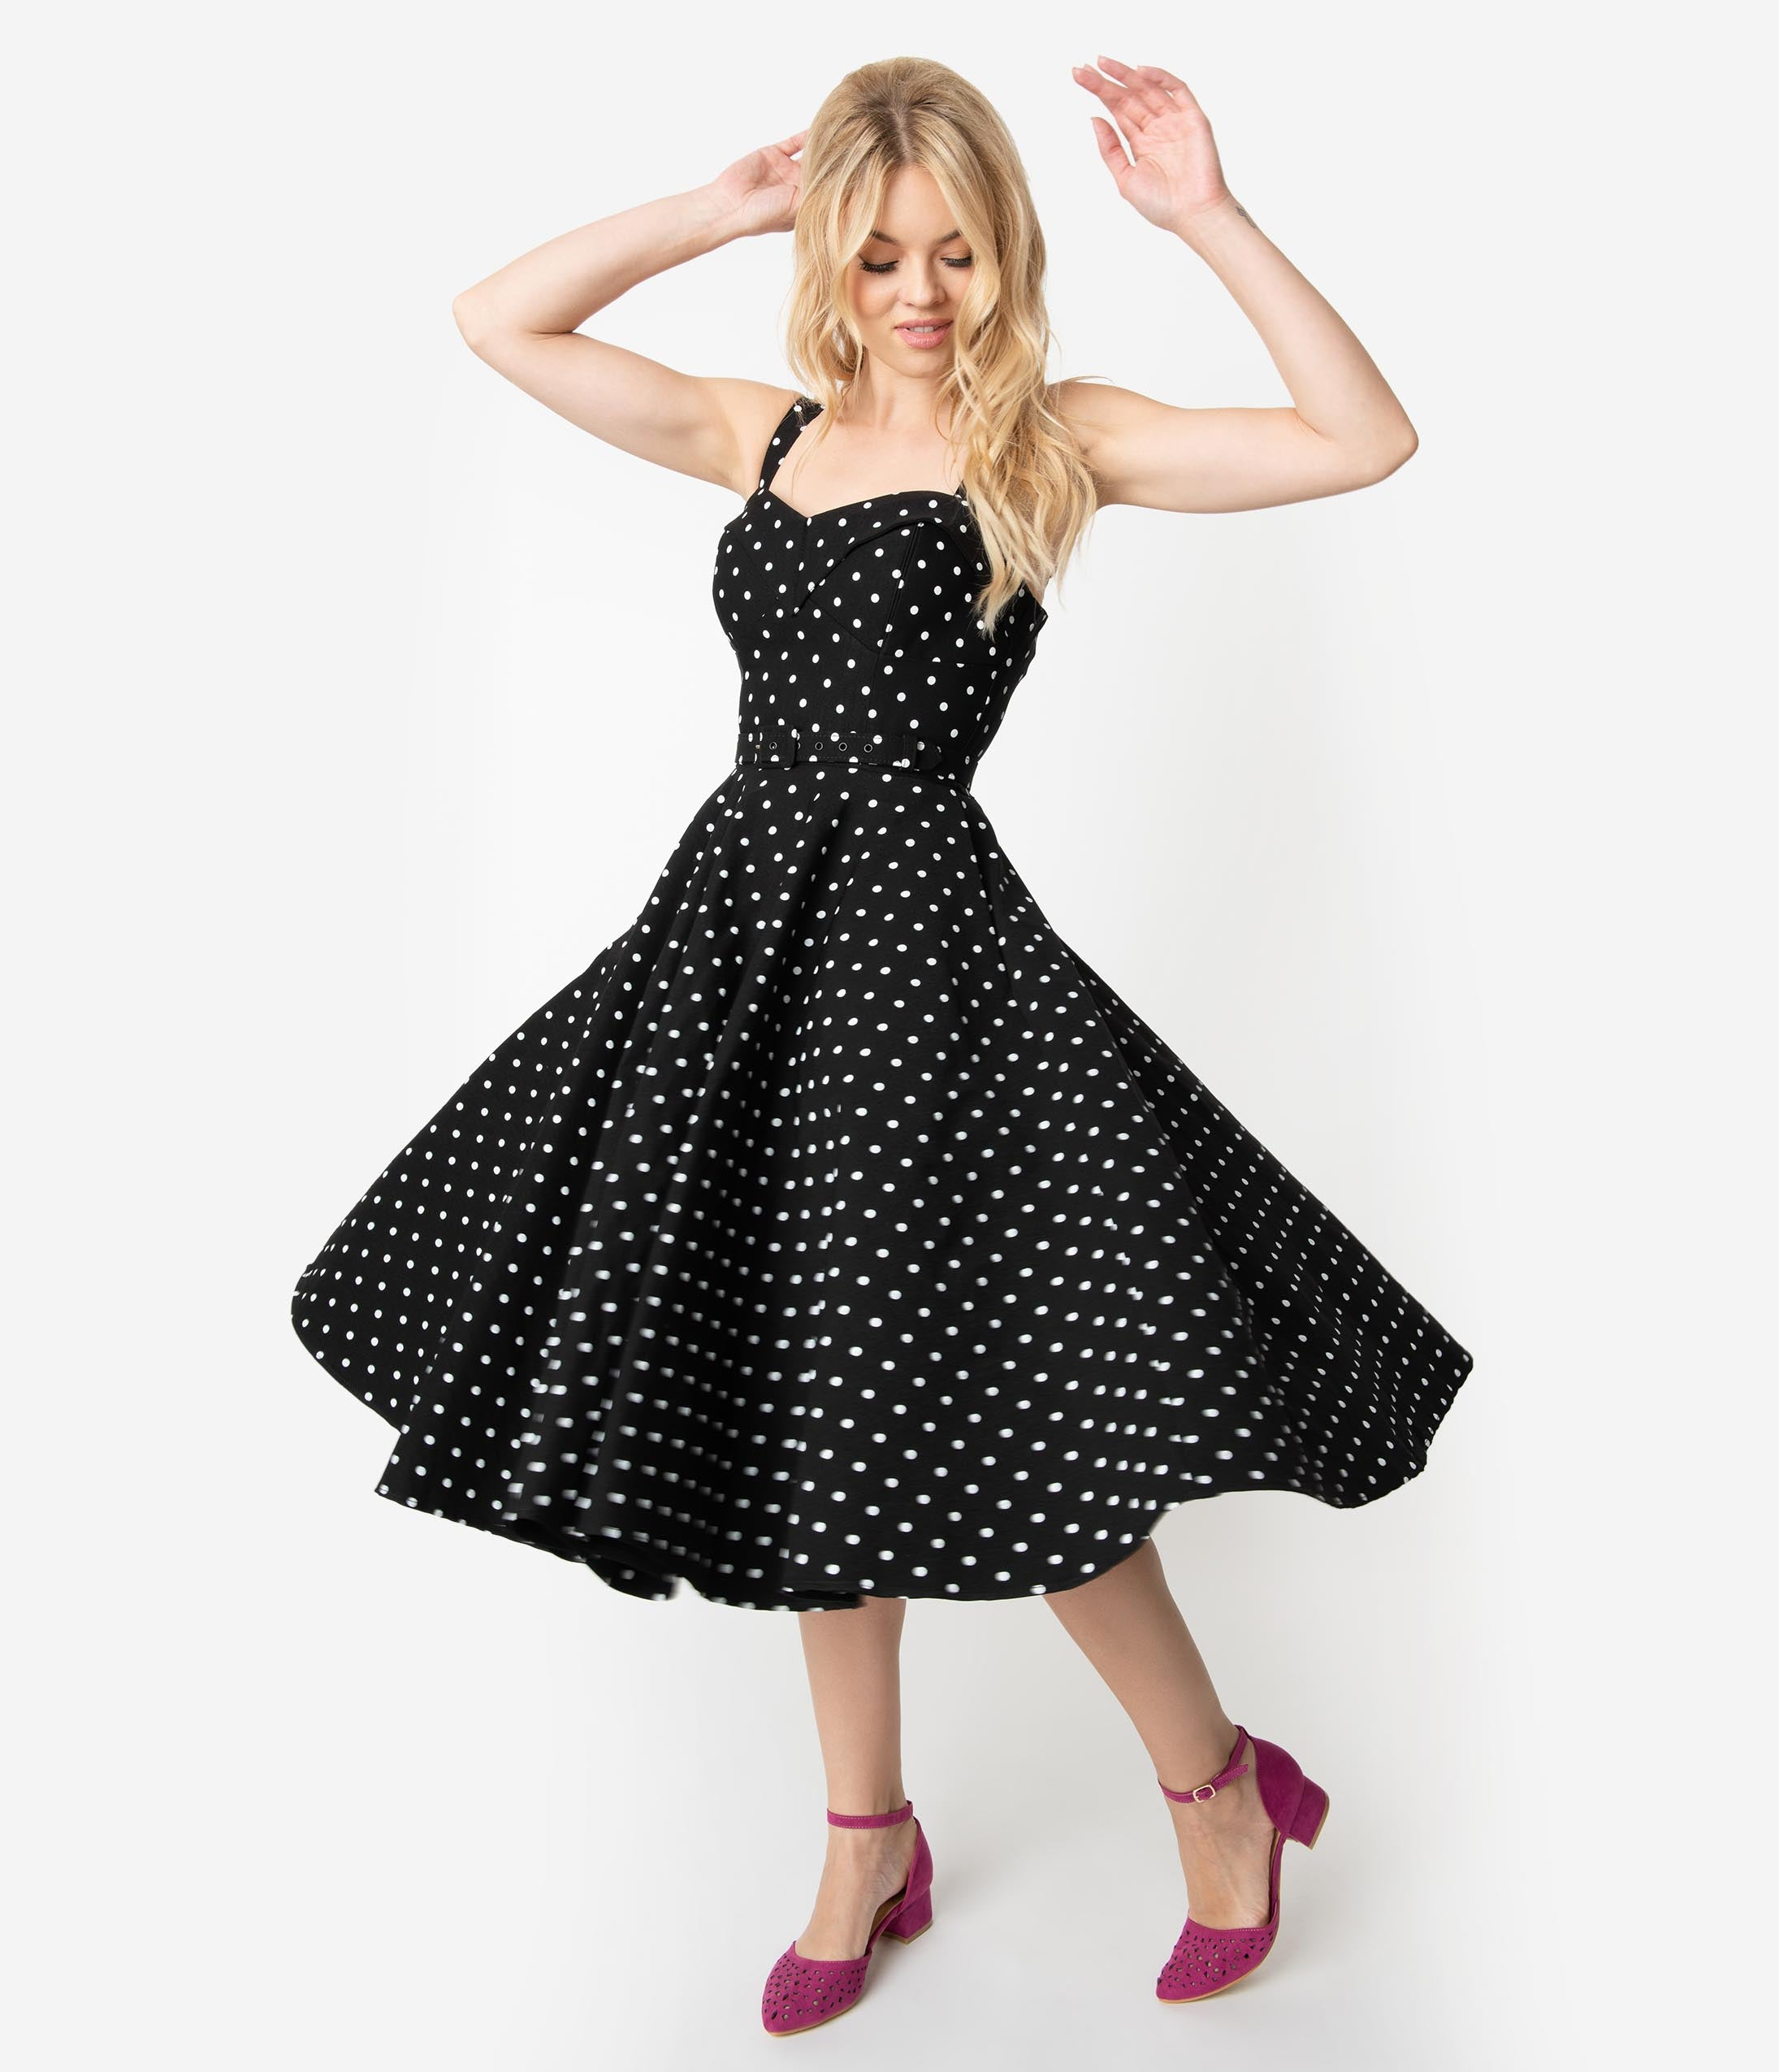 500 Vintage Style Dresses for Sale Vixen By Micheline Pitt Black  White Polka Dot Bengaline Maneater Swing Dress $142.00 AT vintagedancer.com